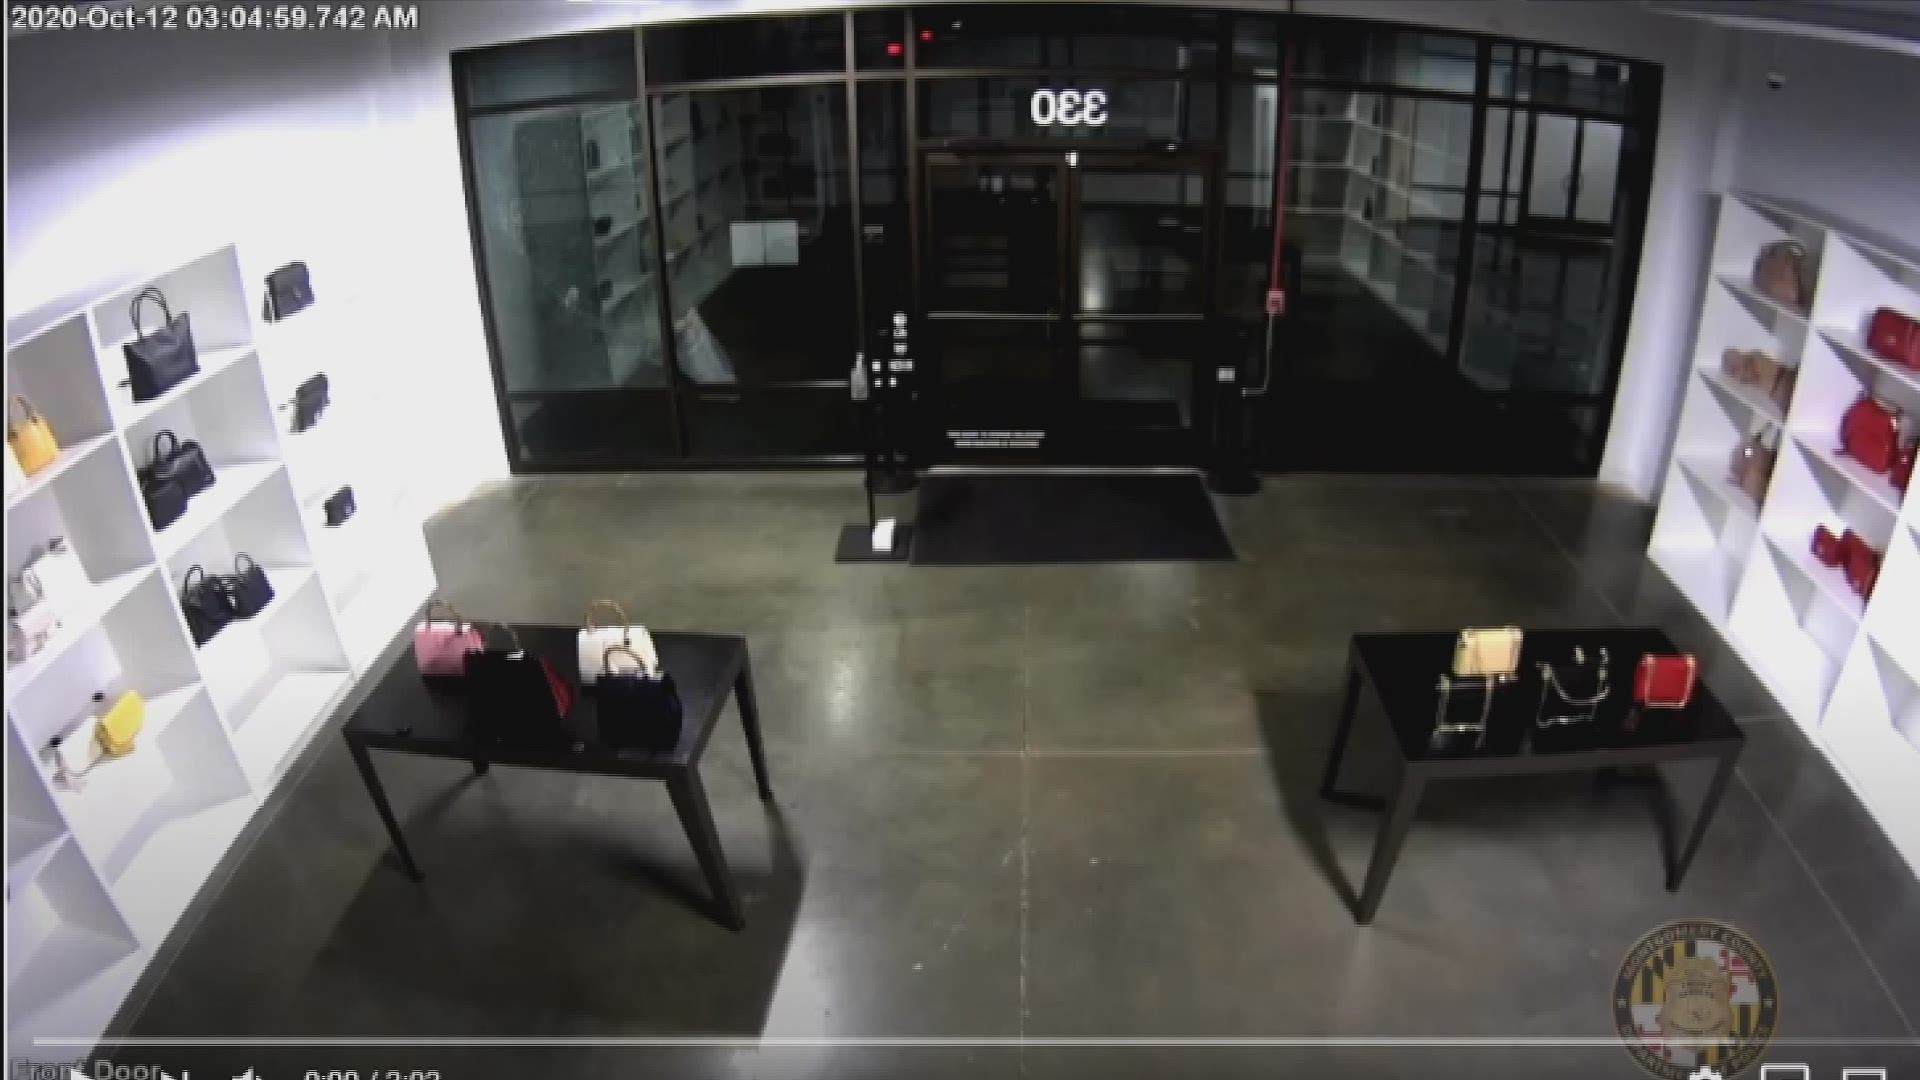 Gucci store robbery in Maryland, video shows suspects in act